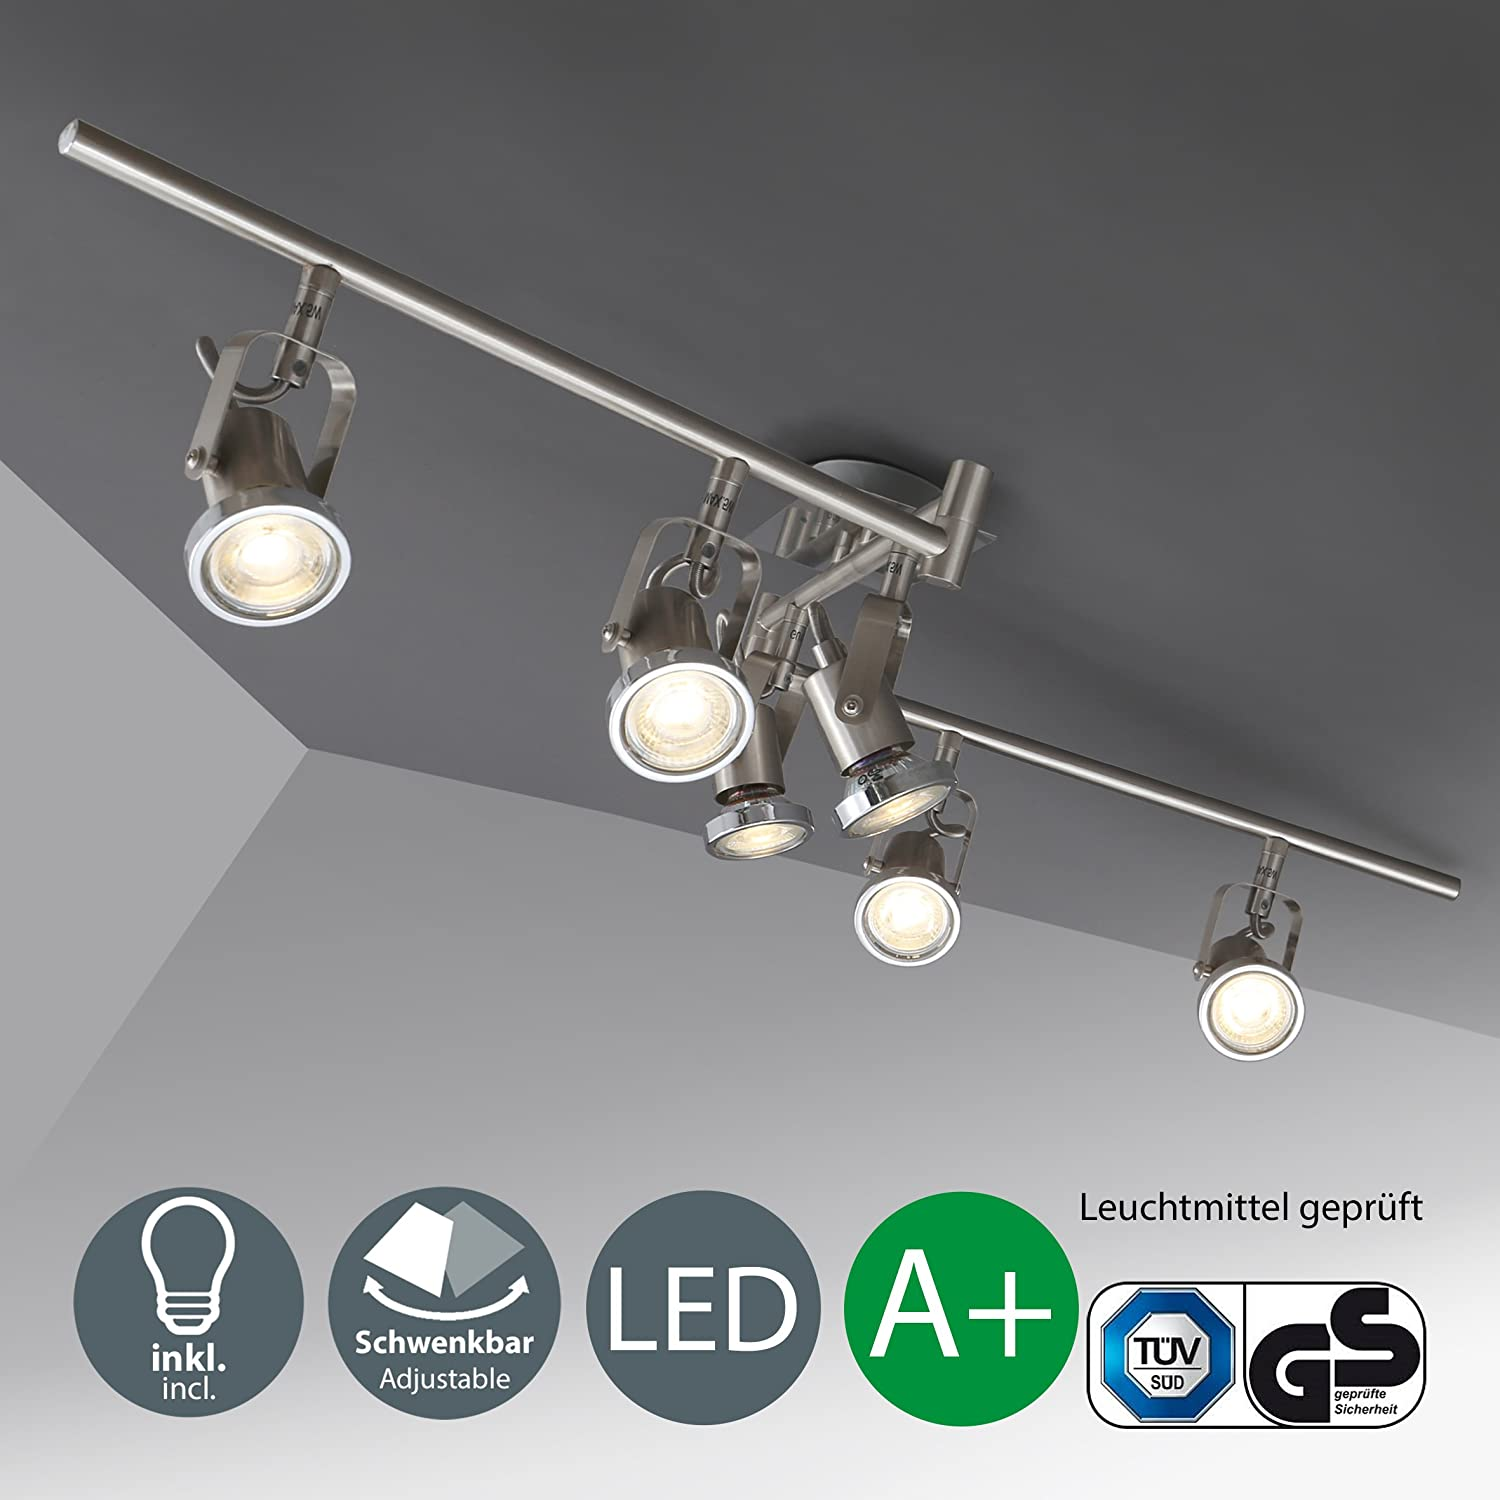 LED ceiling light | ceiling-mounted swivel lamp | 3 bulbs | incl. 3 x 5 W bulbs | with movable ceiling spots | living room lamp | 3 spotlights | modern ceiling spotlights | metal | colour: matte nickel | 230V | GU10 | IP20 [Energy Class A+] B.K.Licht